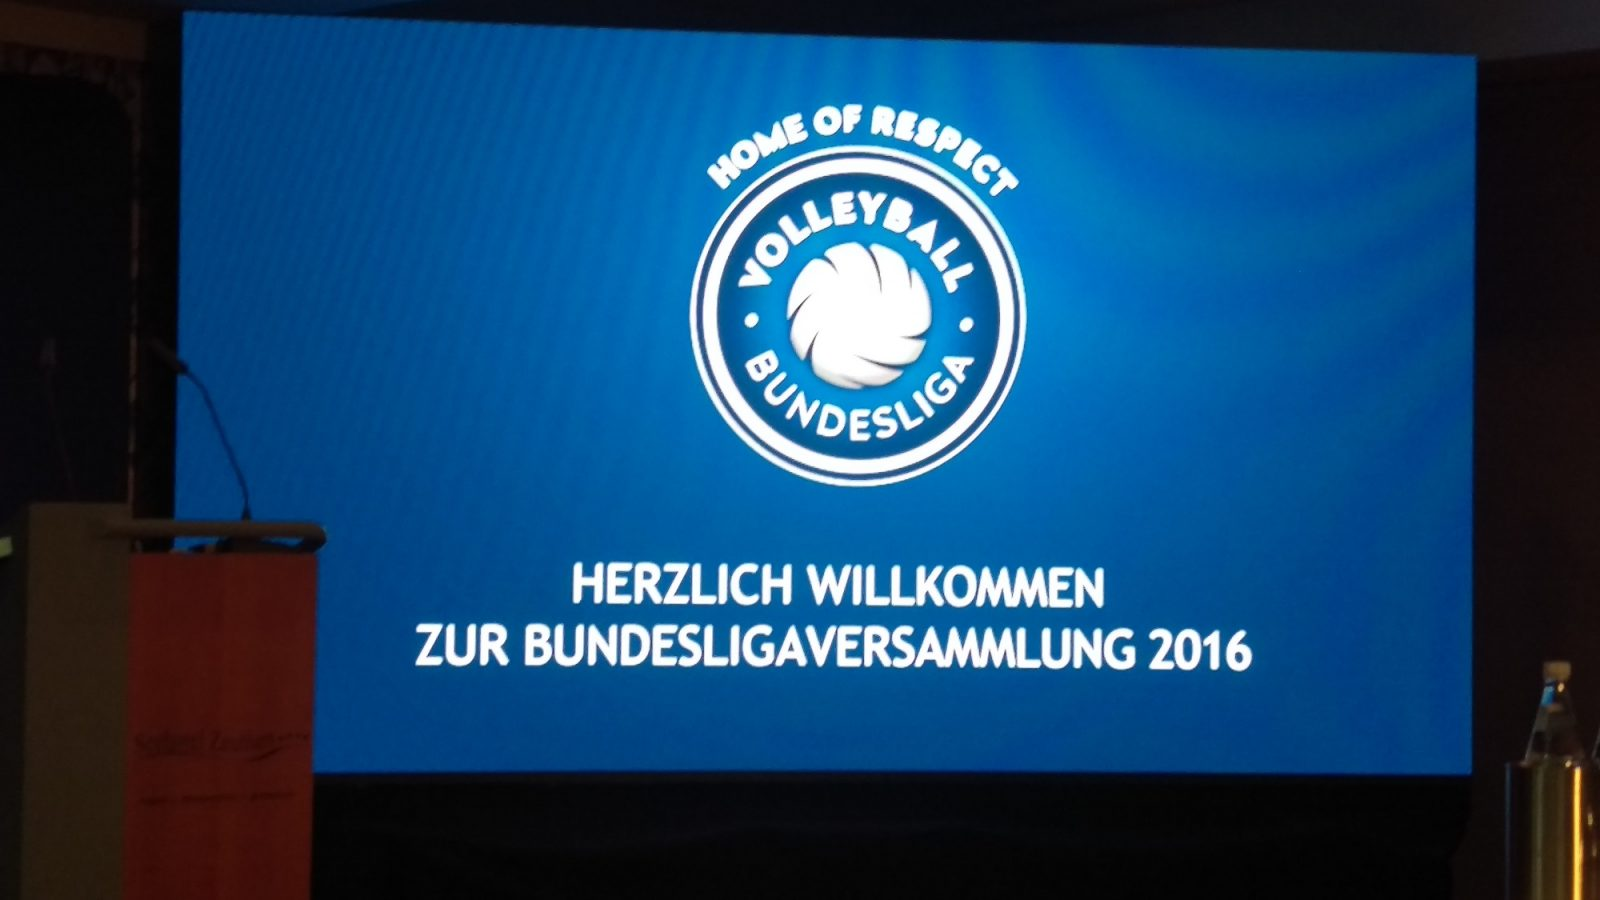 Volleyball-Bundesligaversammlung 2016